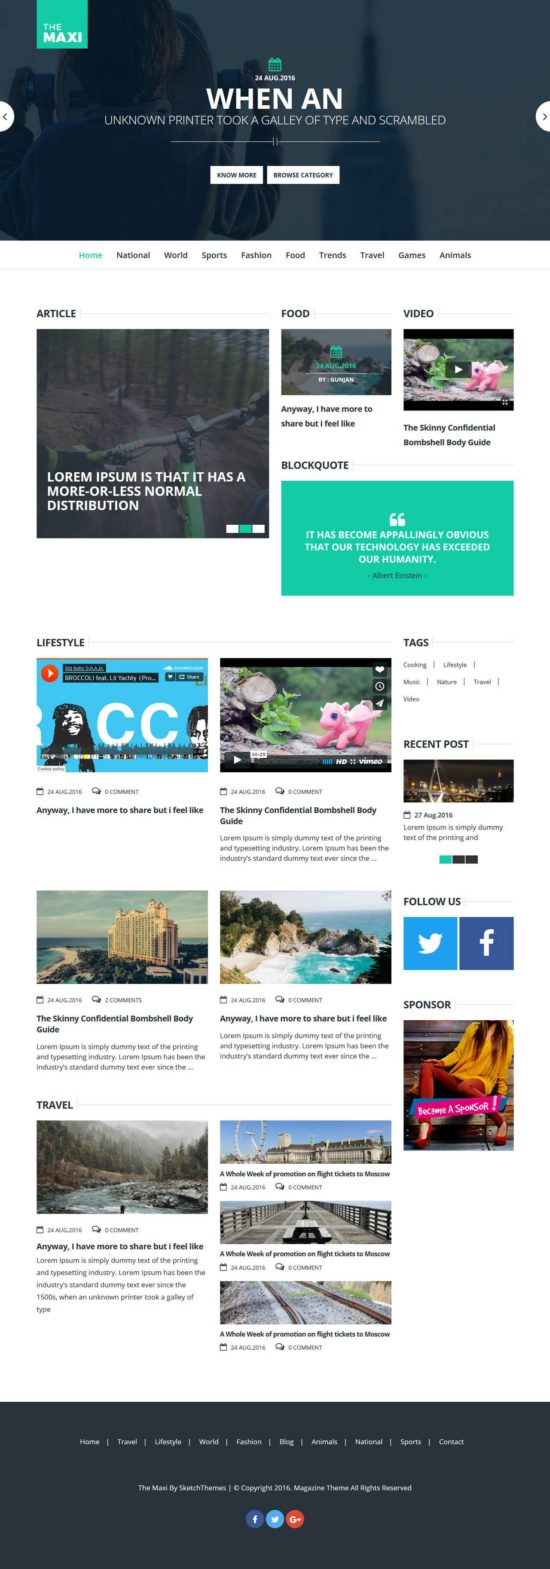 the maxi sketch themes wordpress 01 550x1569 - The Maxi WordPress Theme